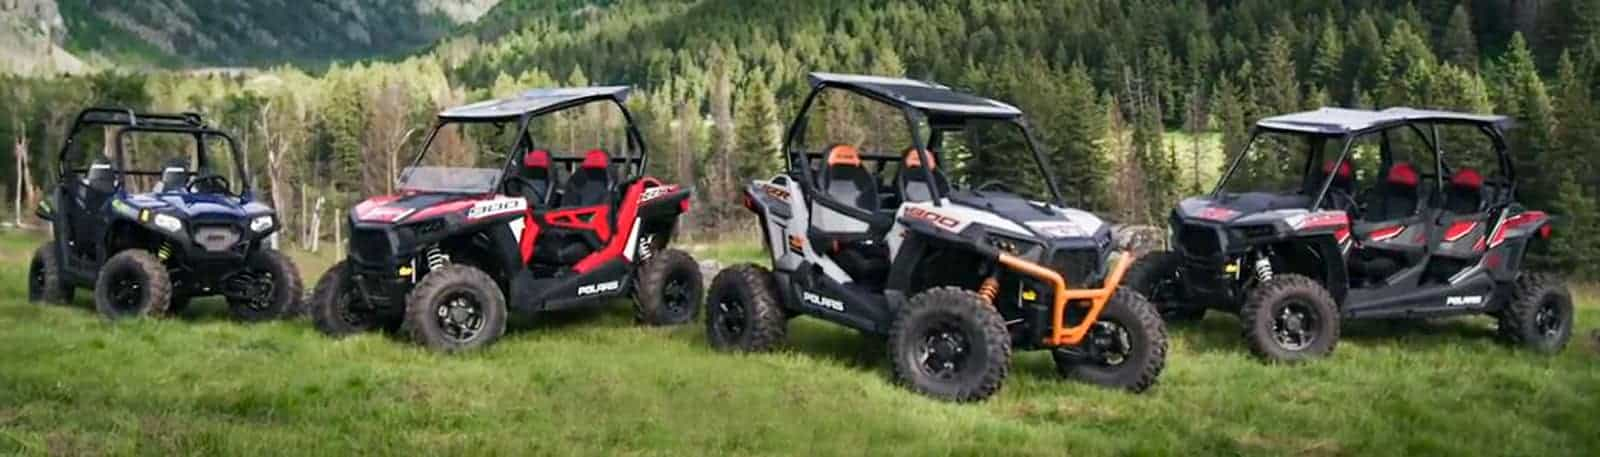 Are Side-by-Sides Worth The Money? • Shively Hardware